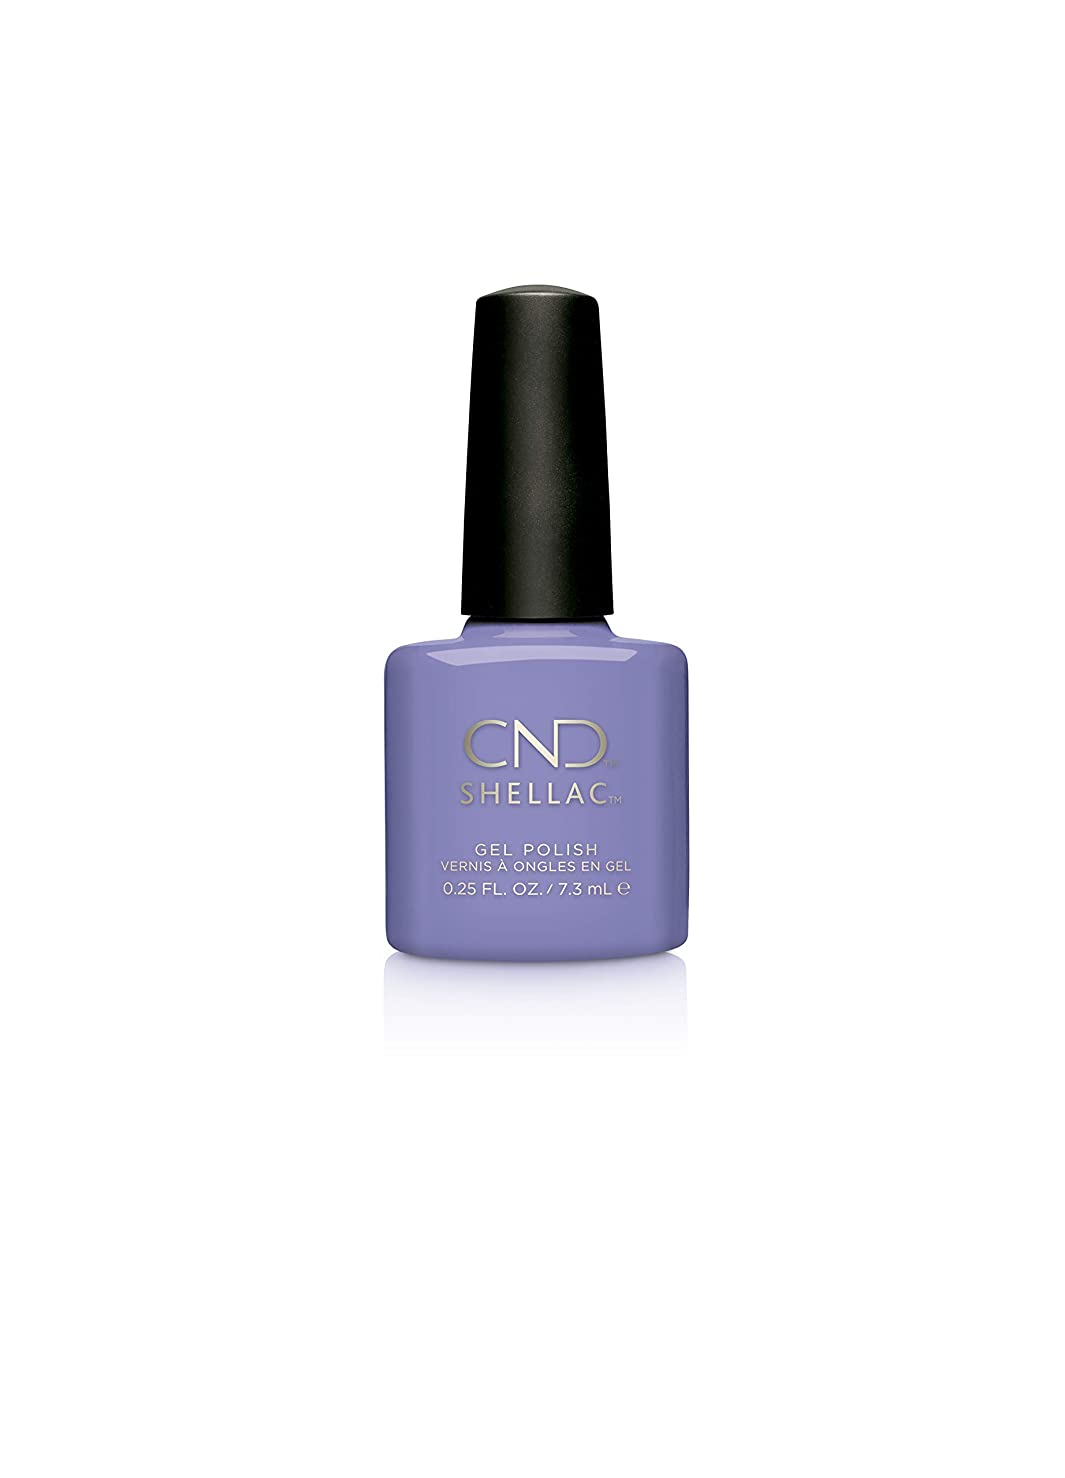 として収束する削除するCND Shellac Gel Polish - Wisteria Haze - 0.25oz / 7.3ml